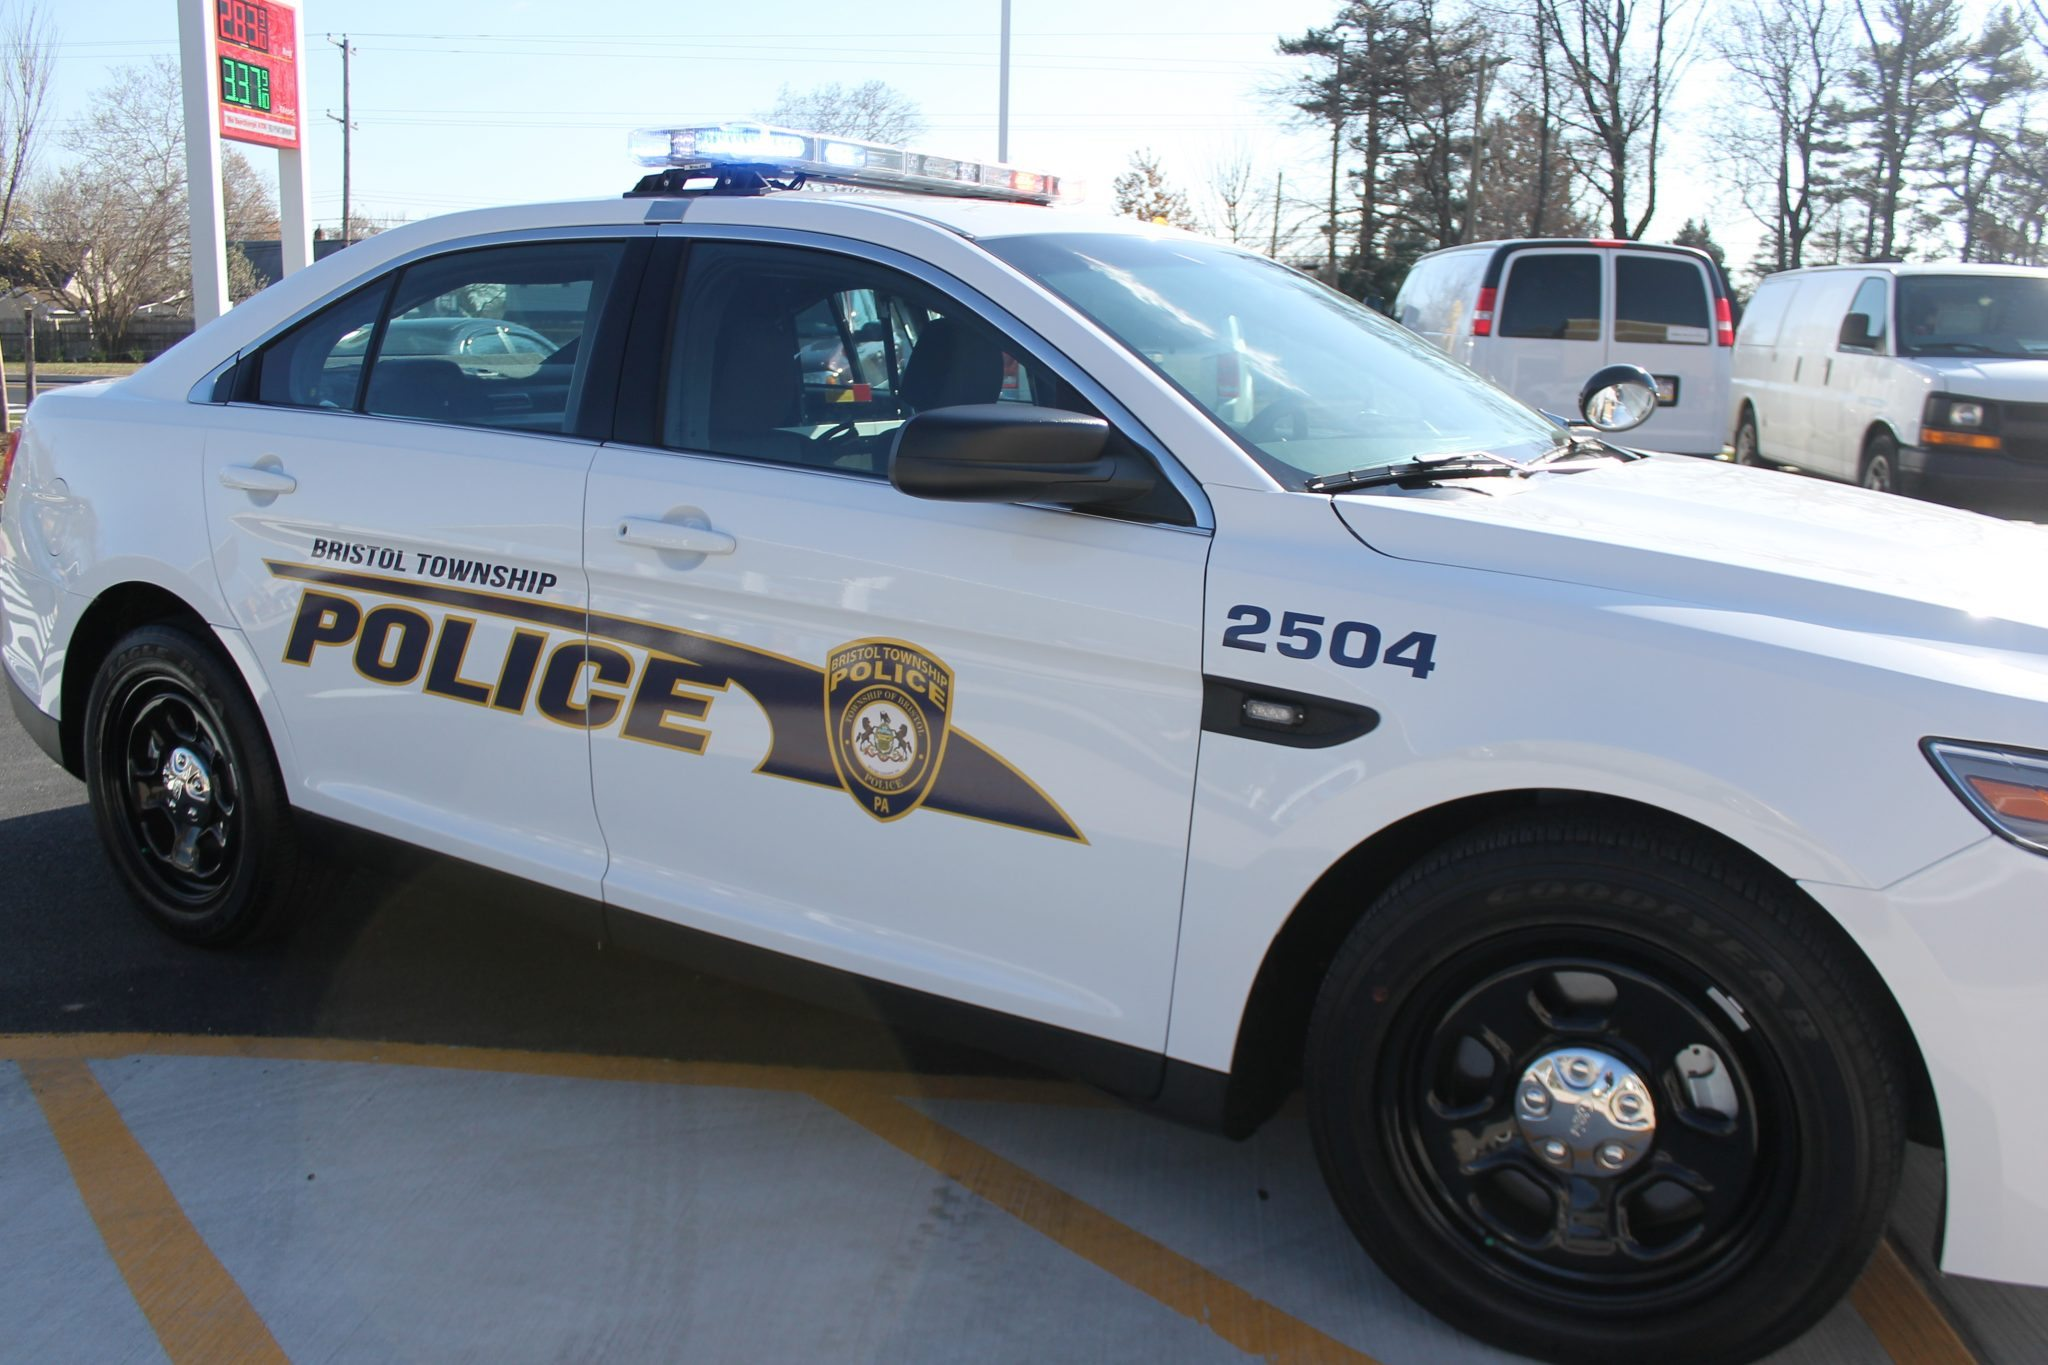 Police Log: Coach Bag Taken, Wanted Subjects Arrested & More